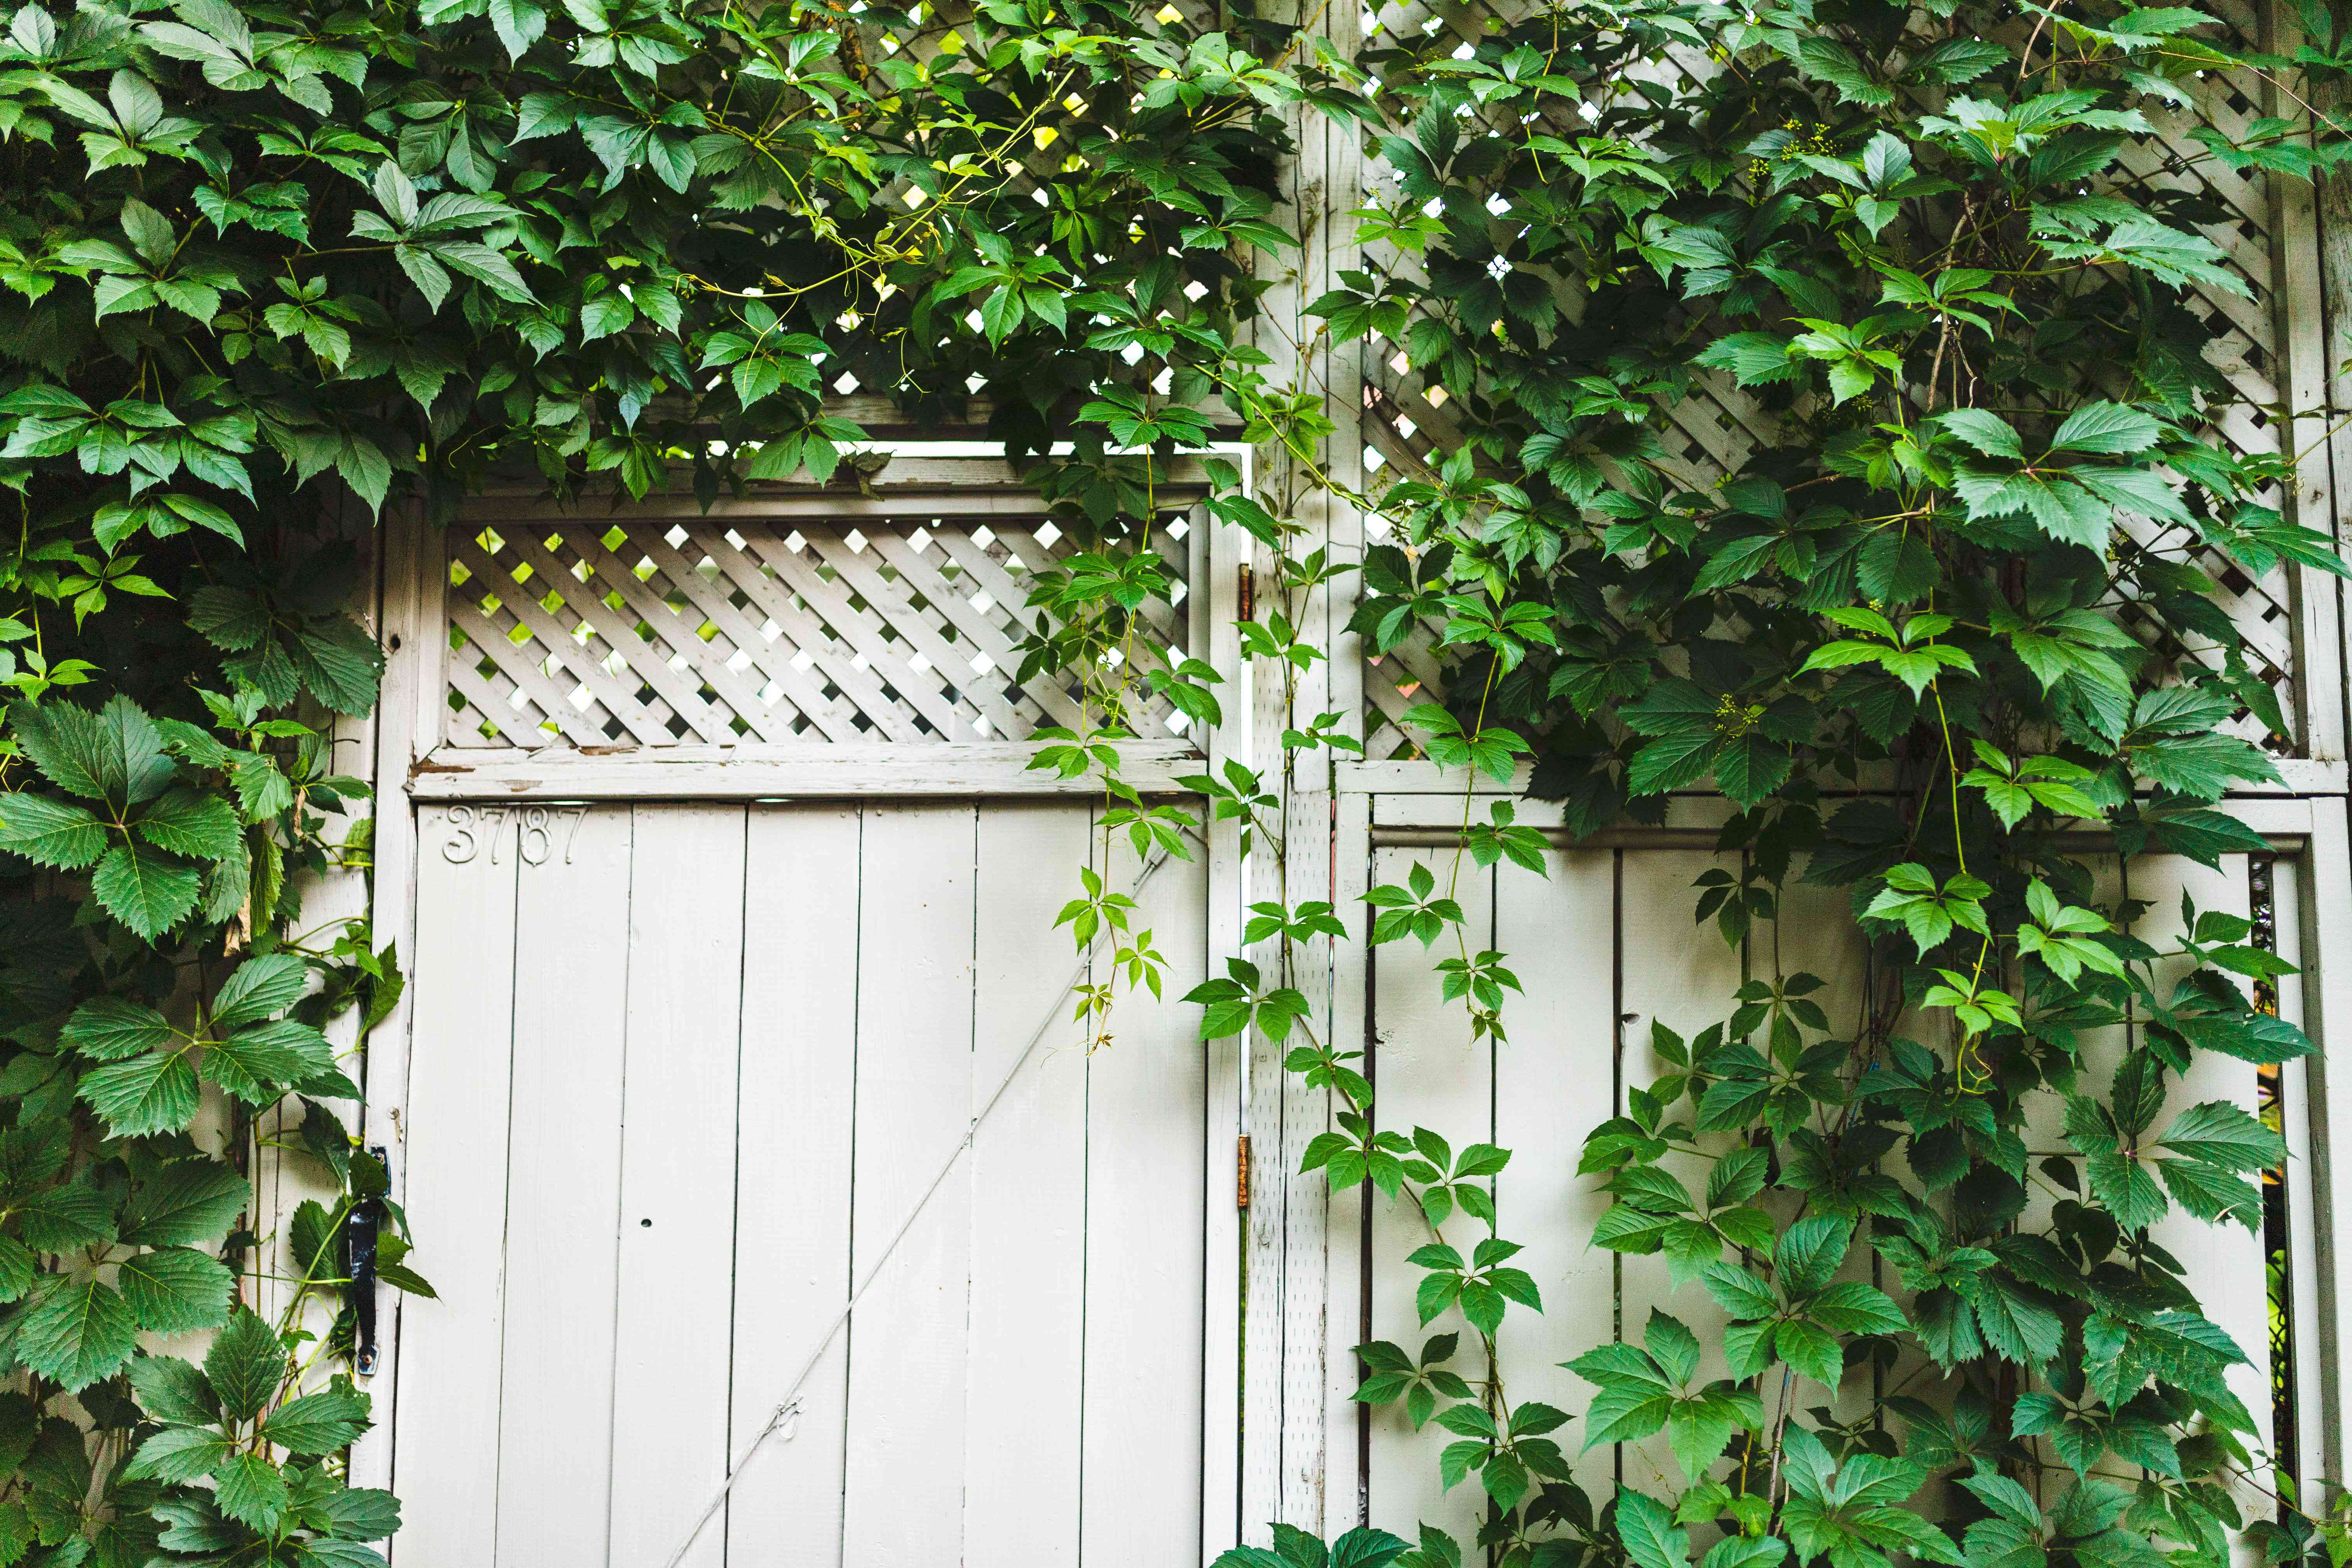 Virginia creeper vines with small leaflets covering white wooden fence